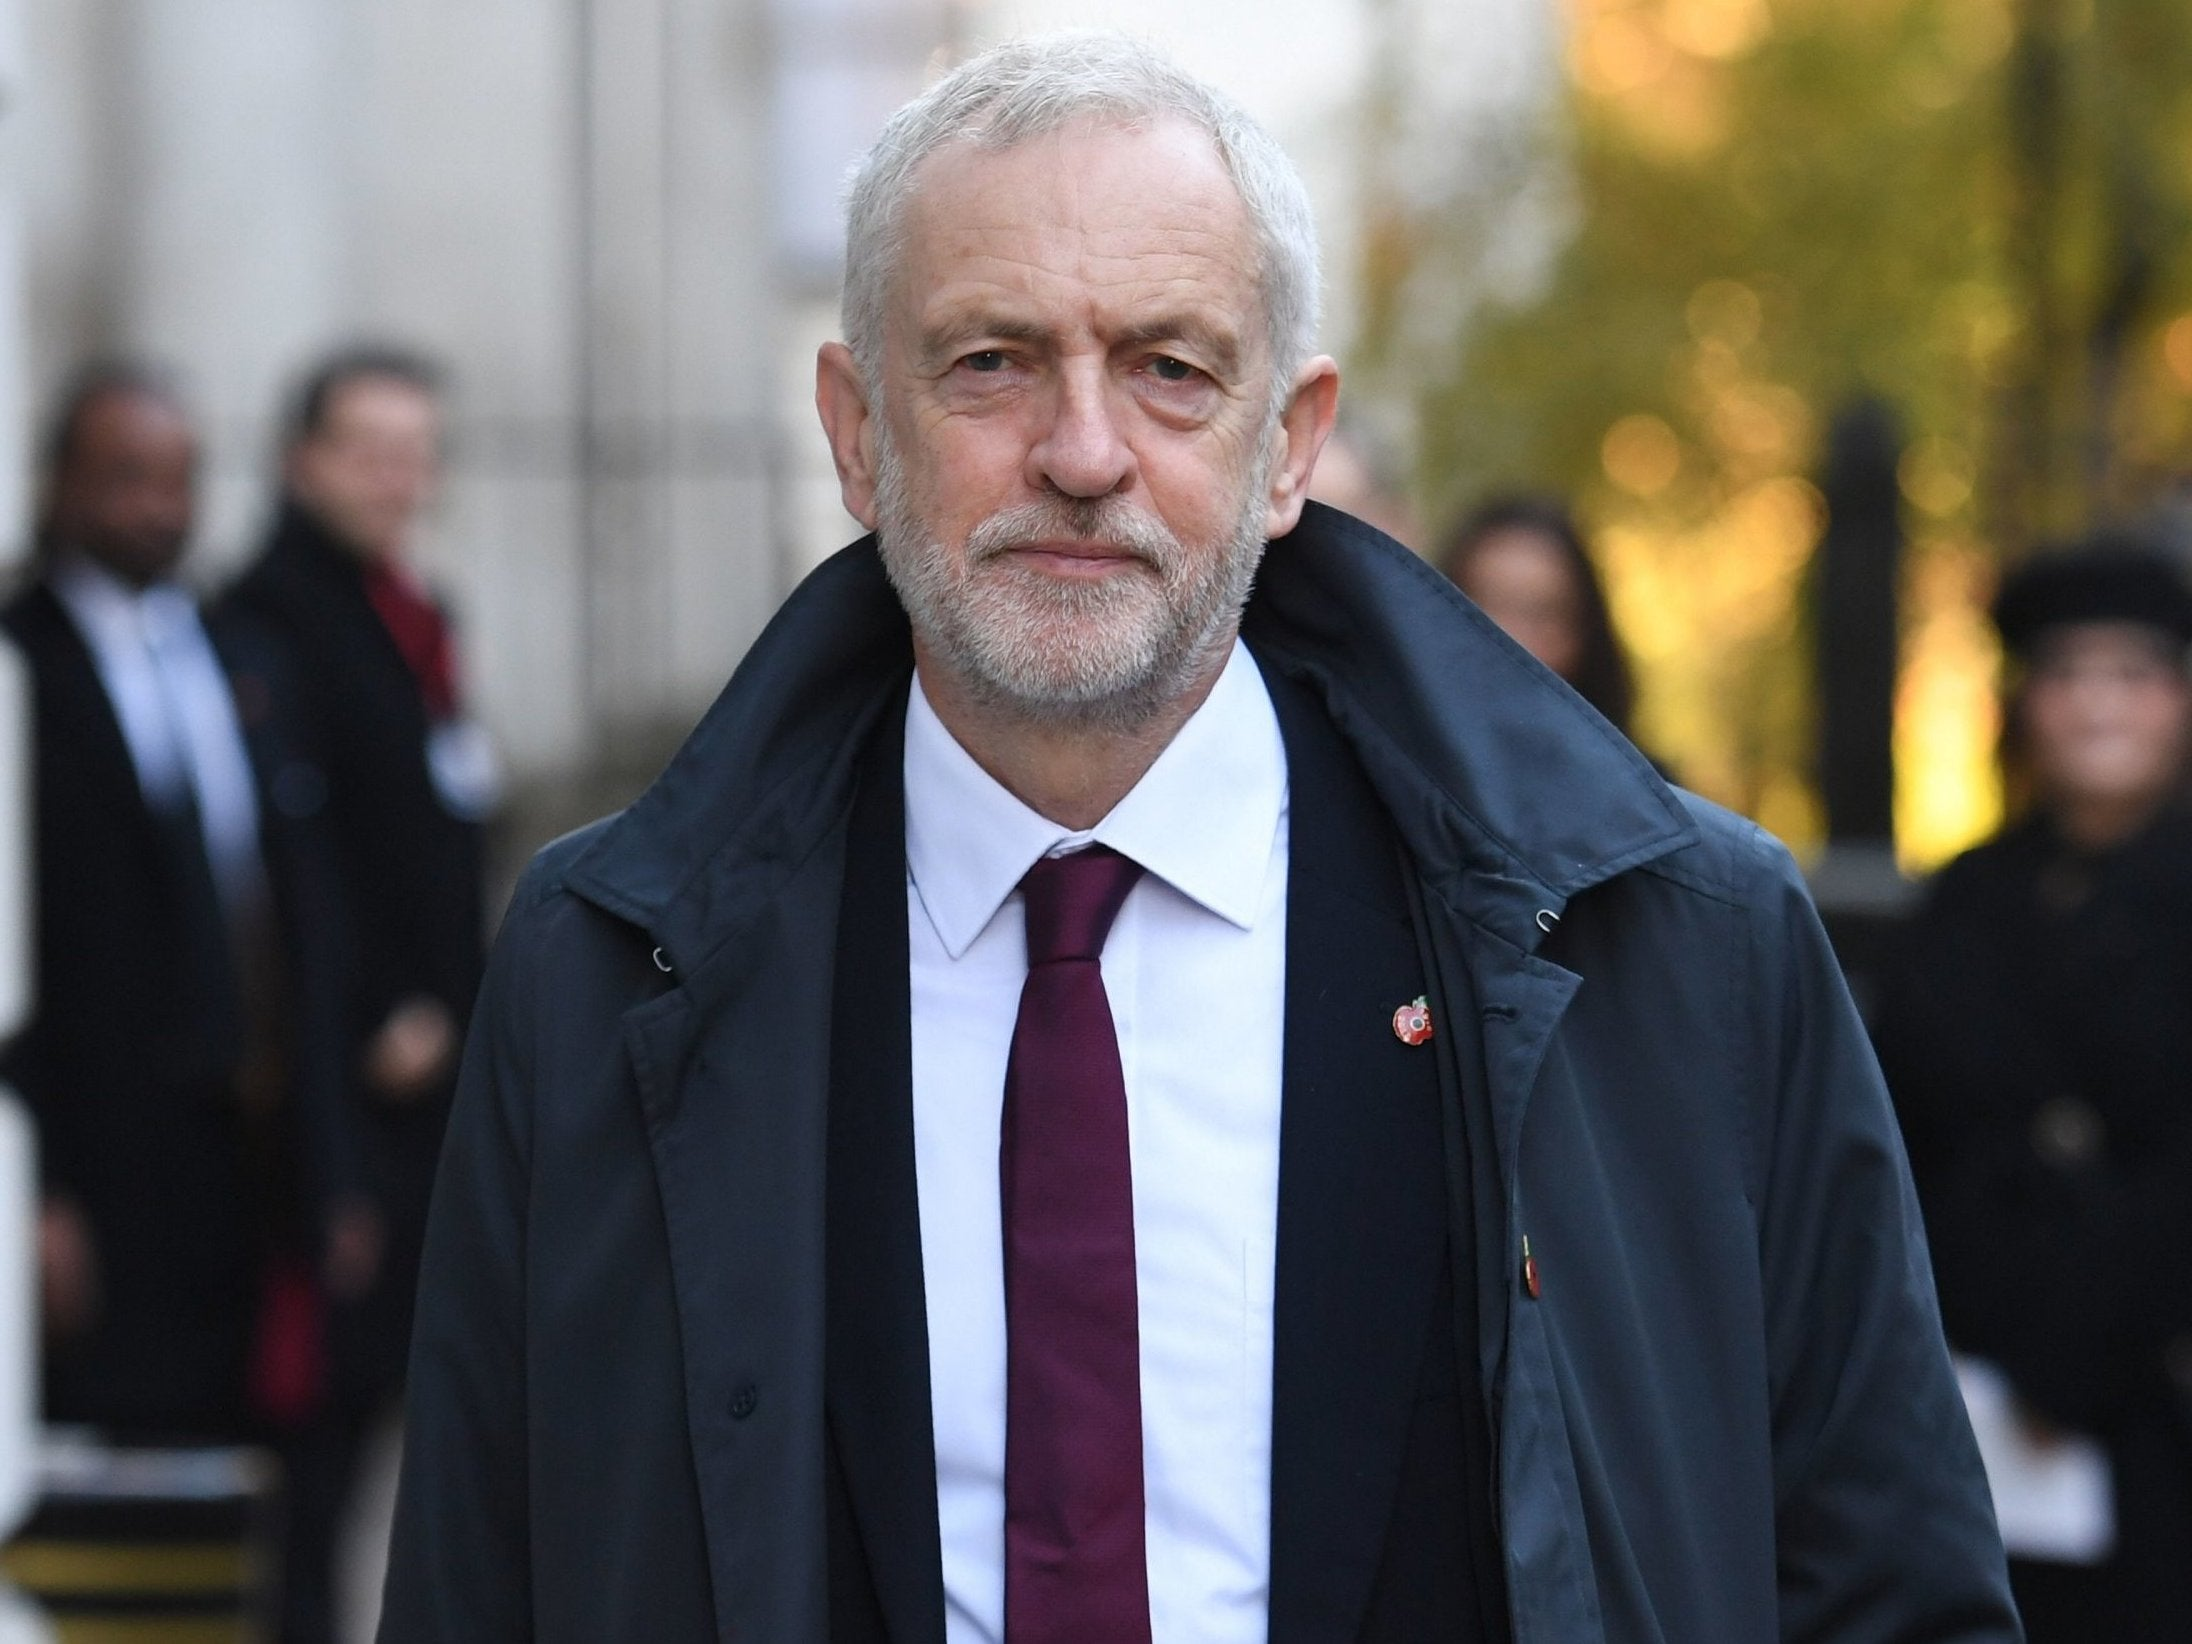 Brexit: Jeremy Corbyn says he does not know how he would vote in a new EU referendum